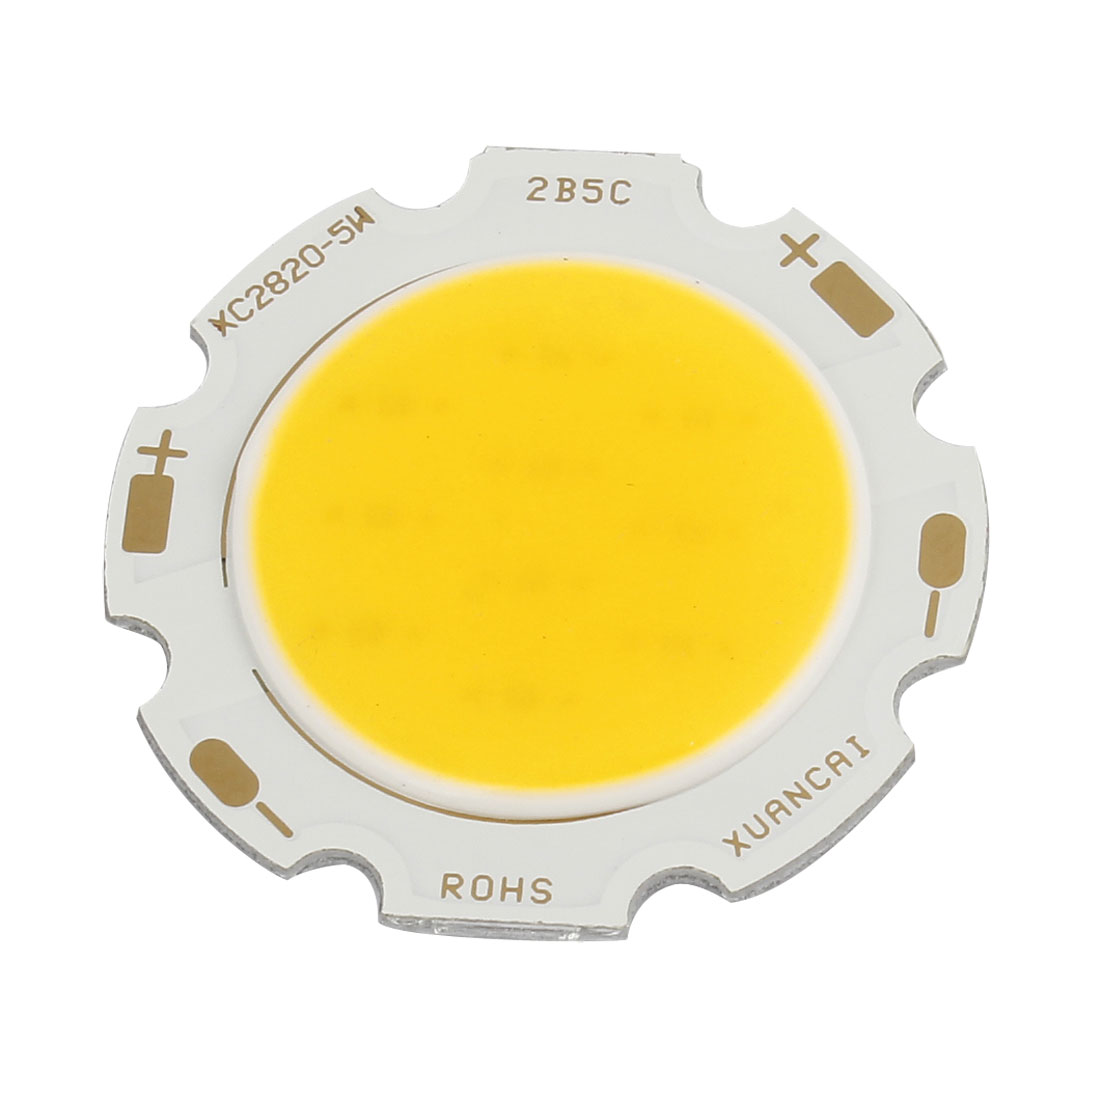 15-17V 300mA 5W Warm White Light High Power SMD COB LED Lamp Chip Bulb